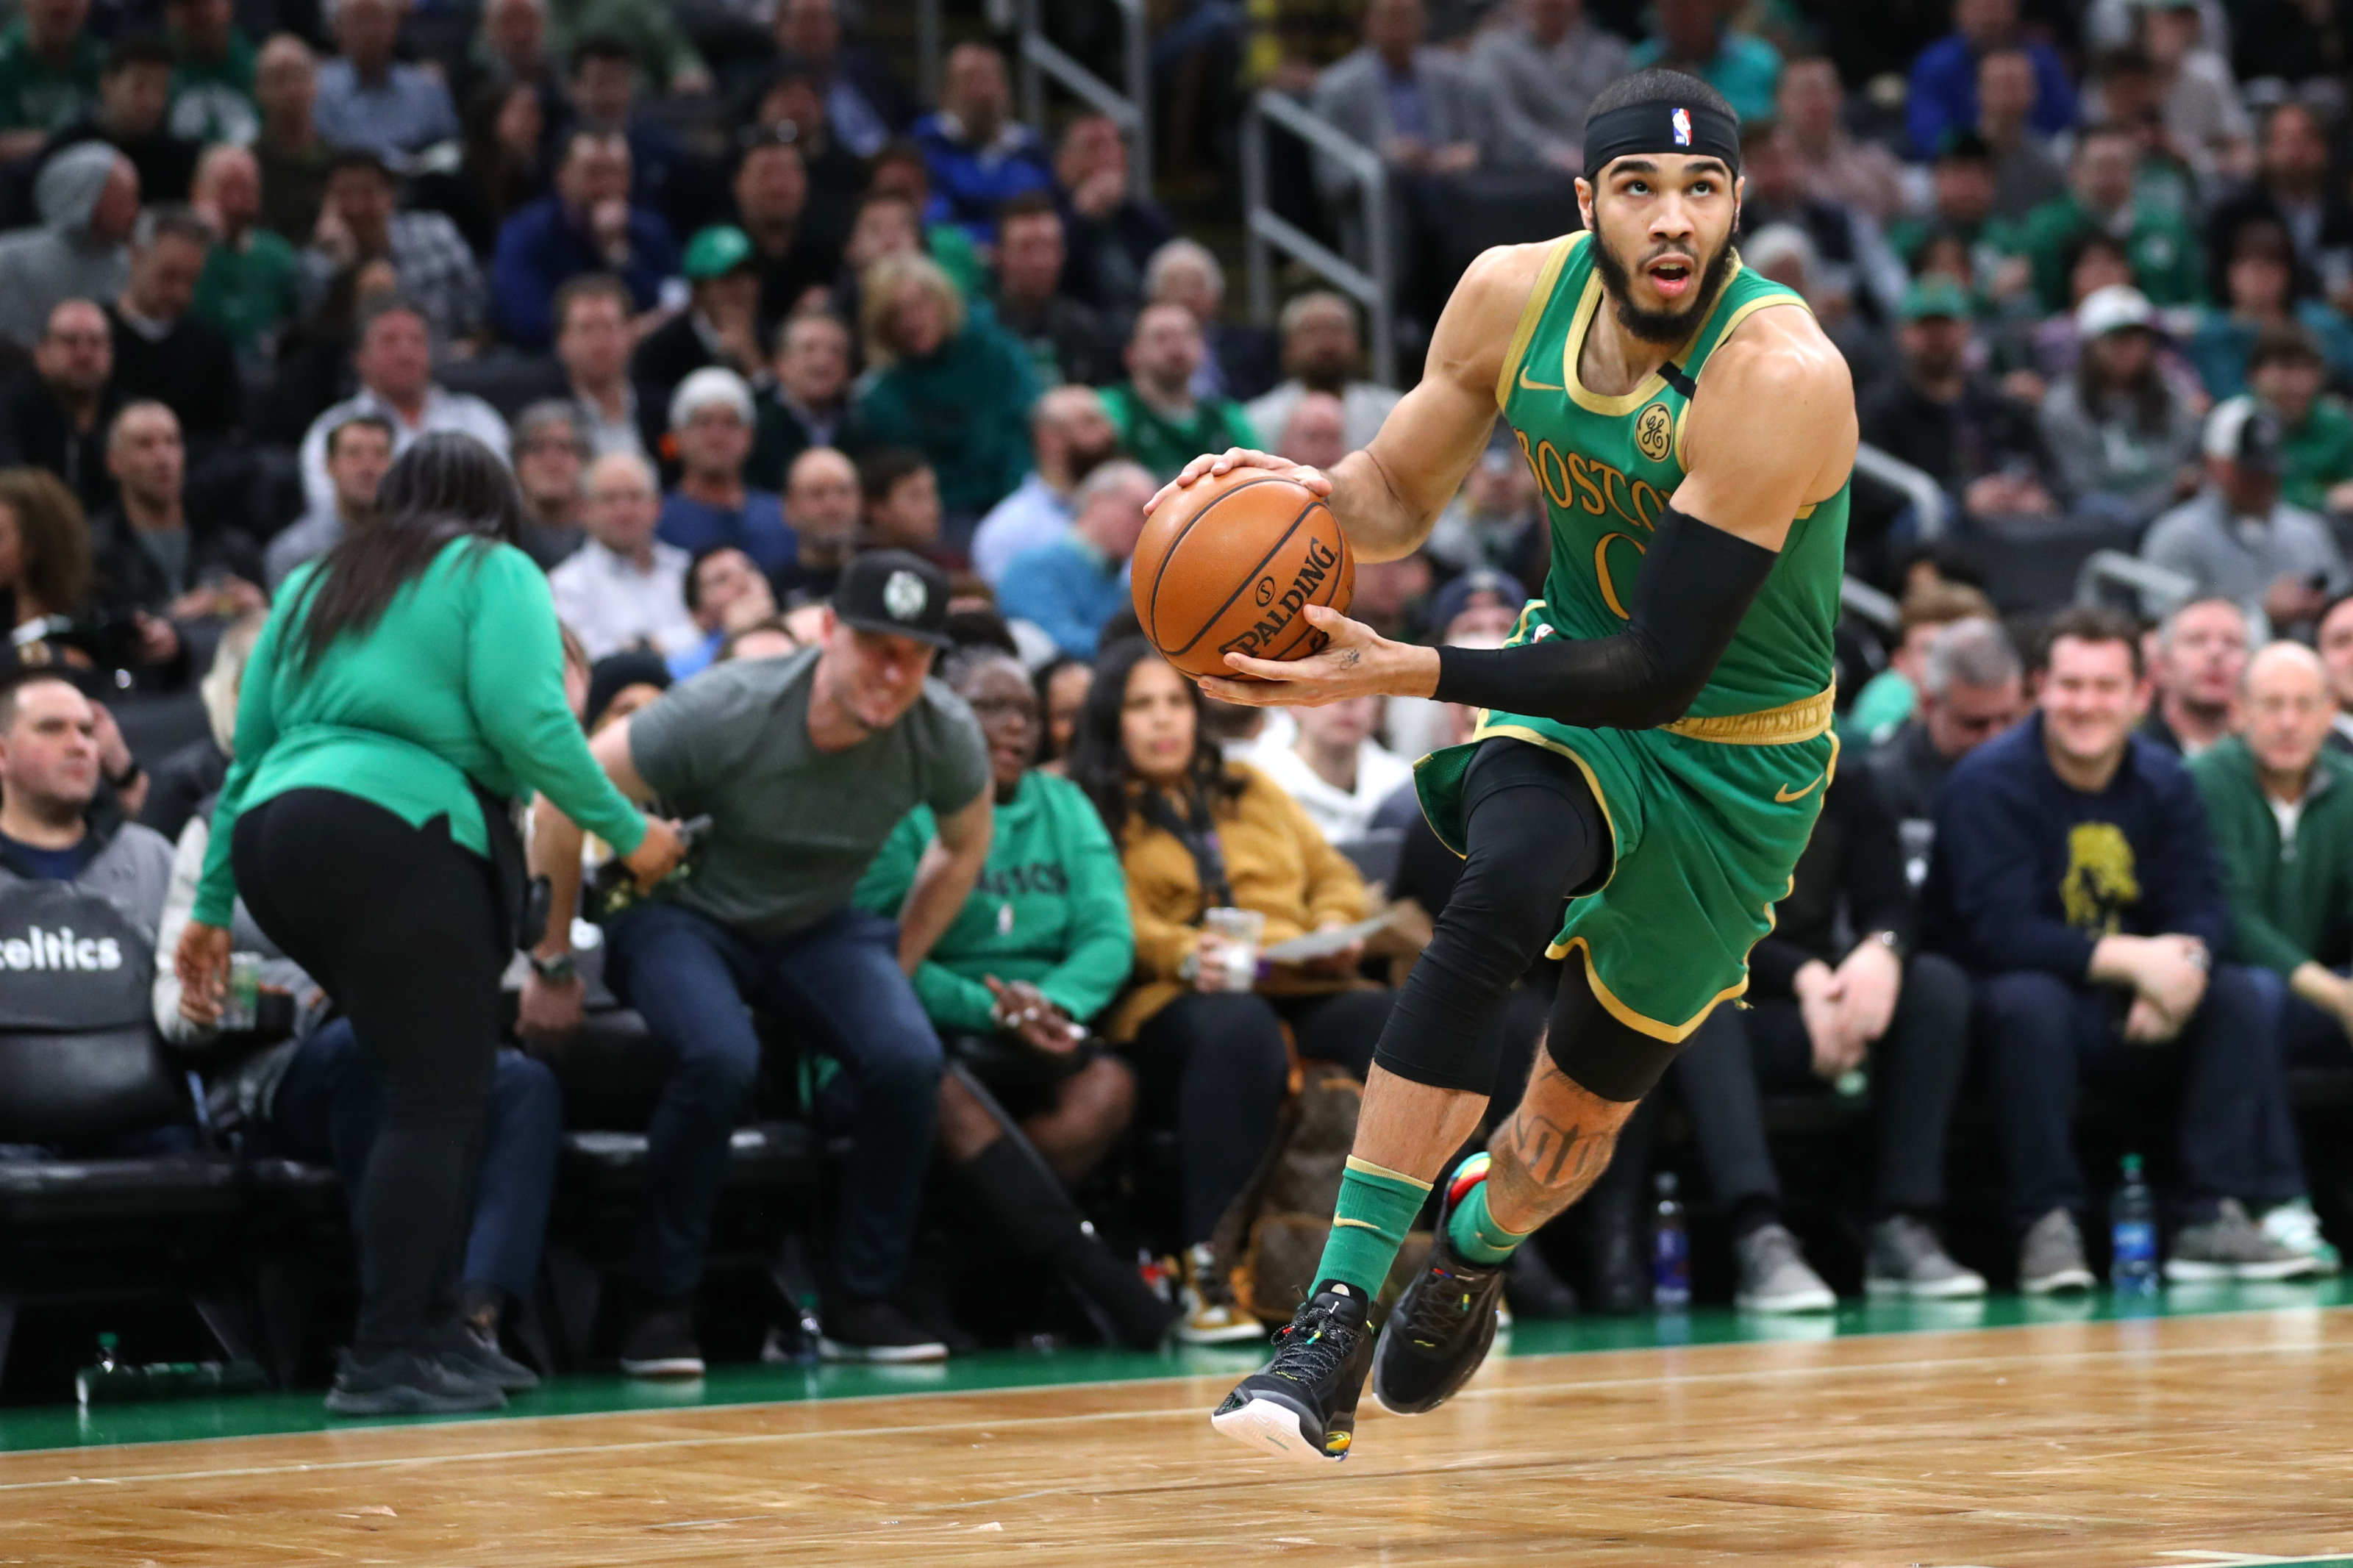 Boston Celtics: Jayson Tatum is not a superstar just yet... but he will be